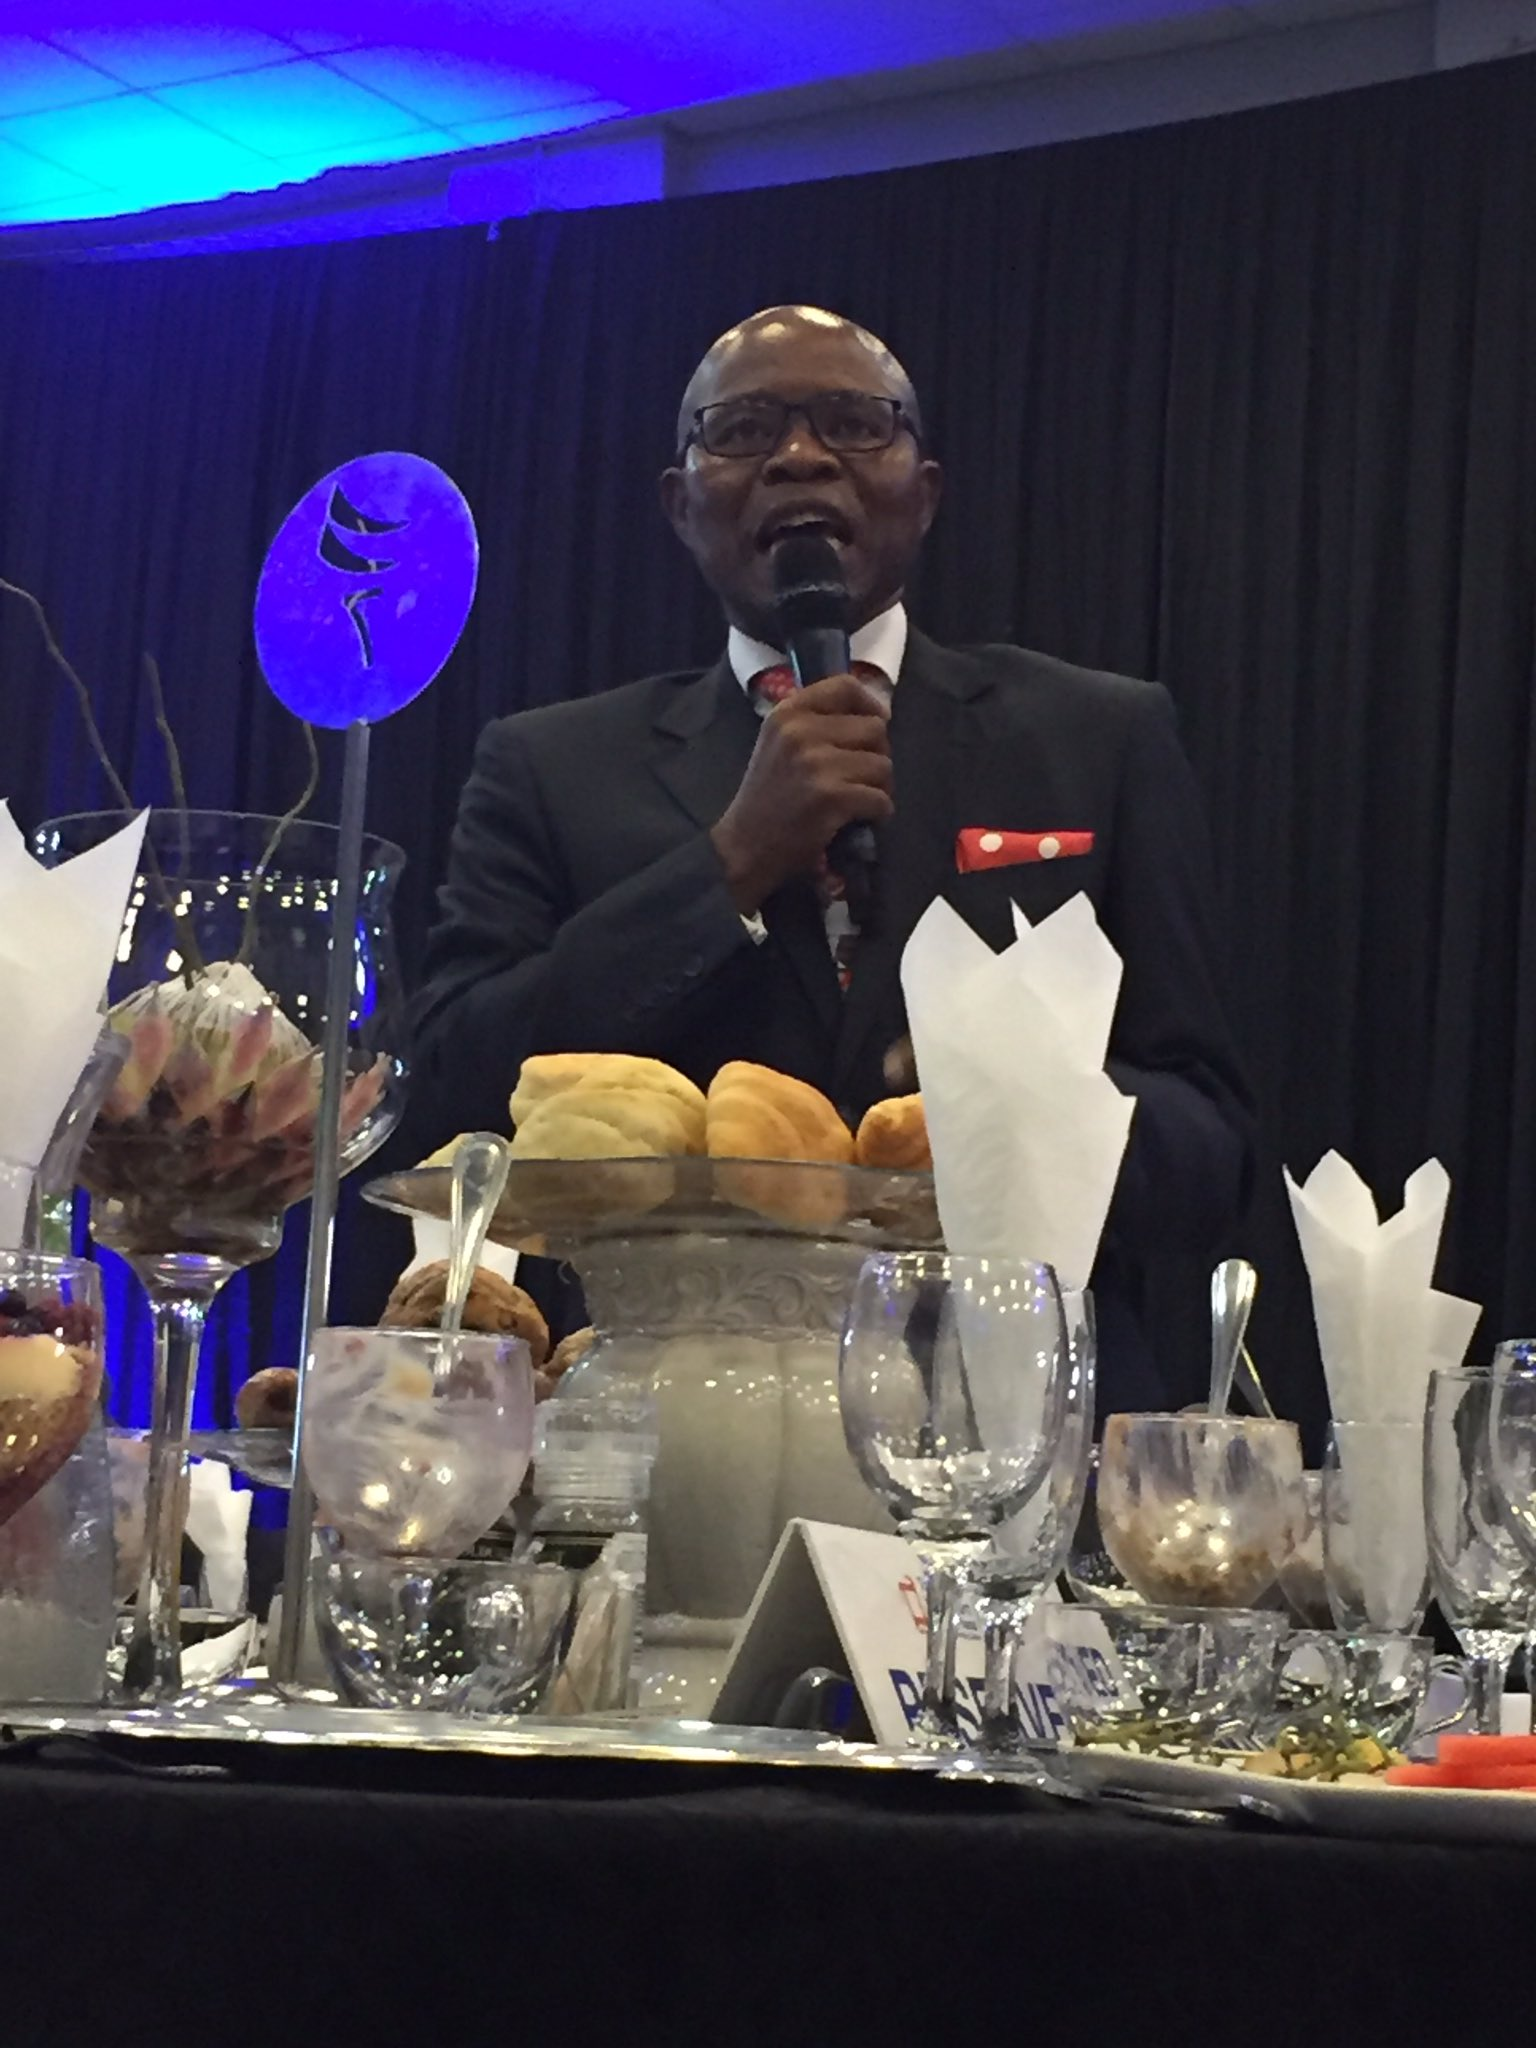 #SfisoButhelezi: today's youth must define their purpose. Youth of pre-apartheid era did #BrandSAYouthBreakfast cc @Brand_SA @Andile_Khumalo https://t.co/SpuQZRkKlv